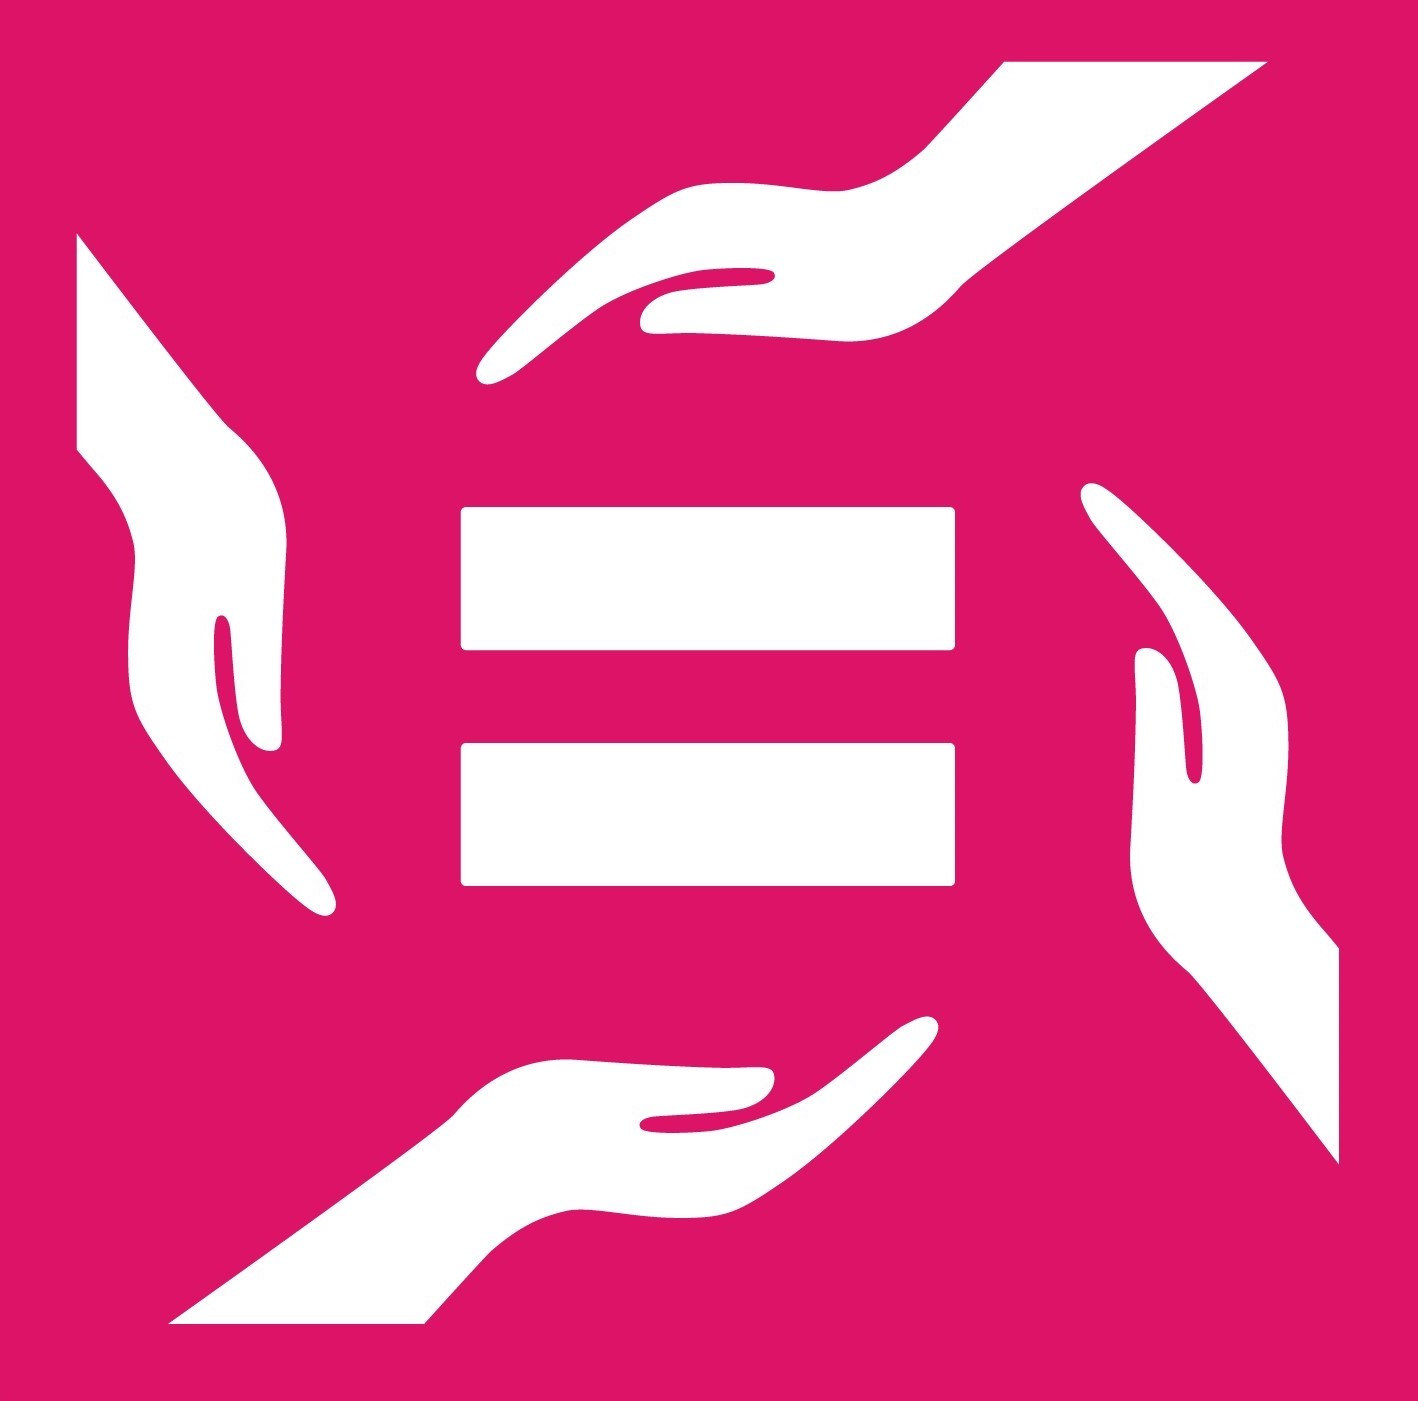 Ensure Equal Opportunities and End Discrimination